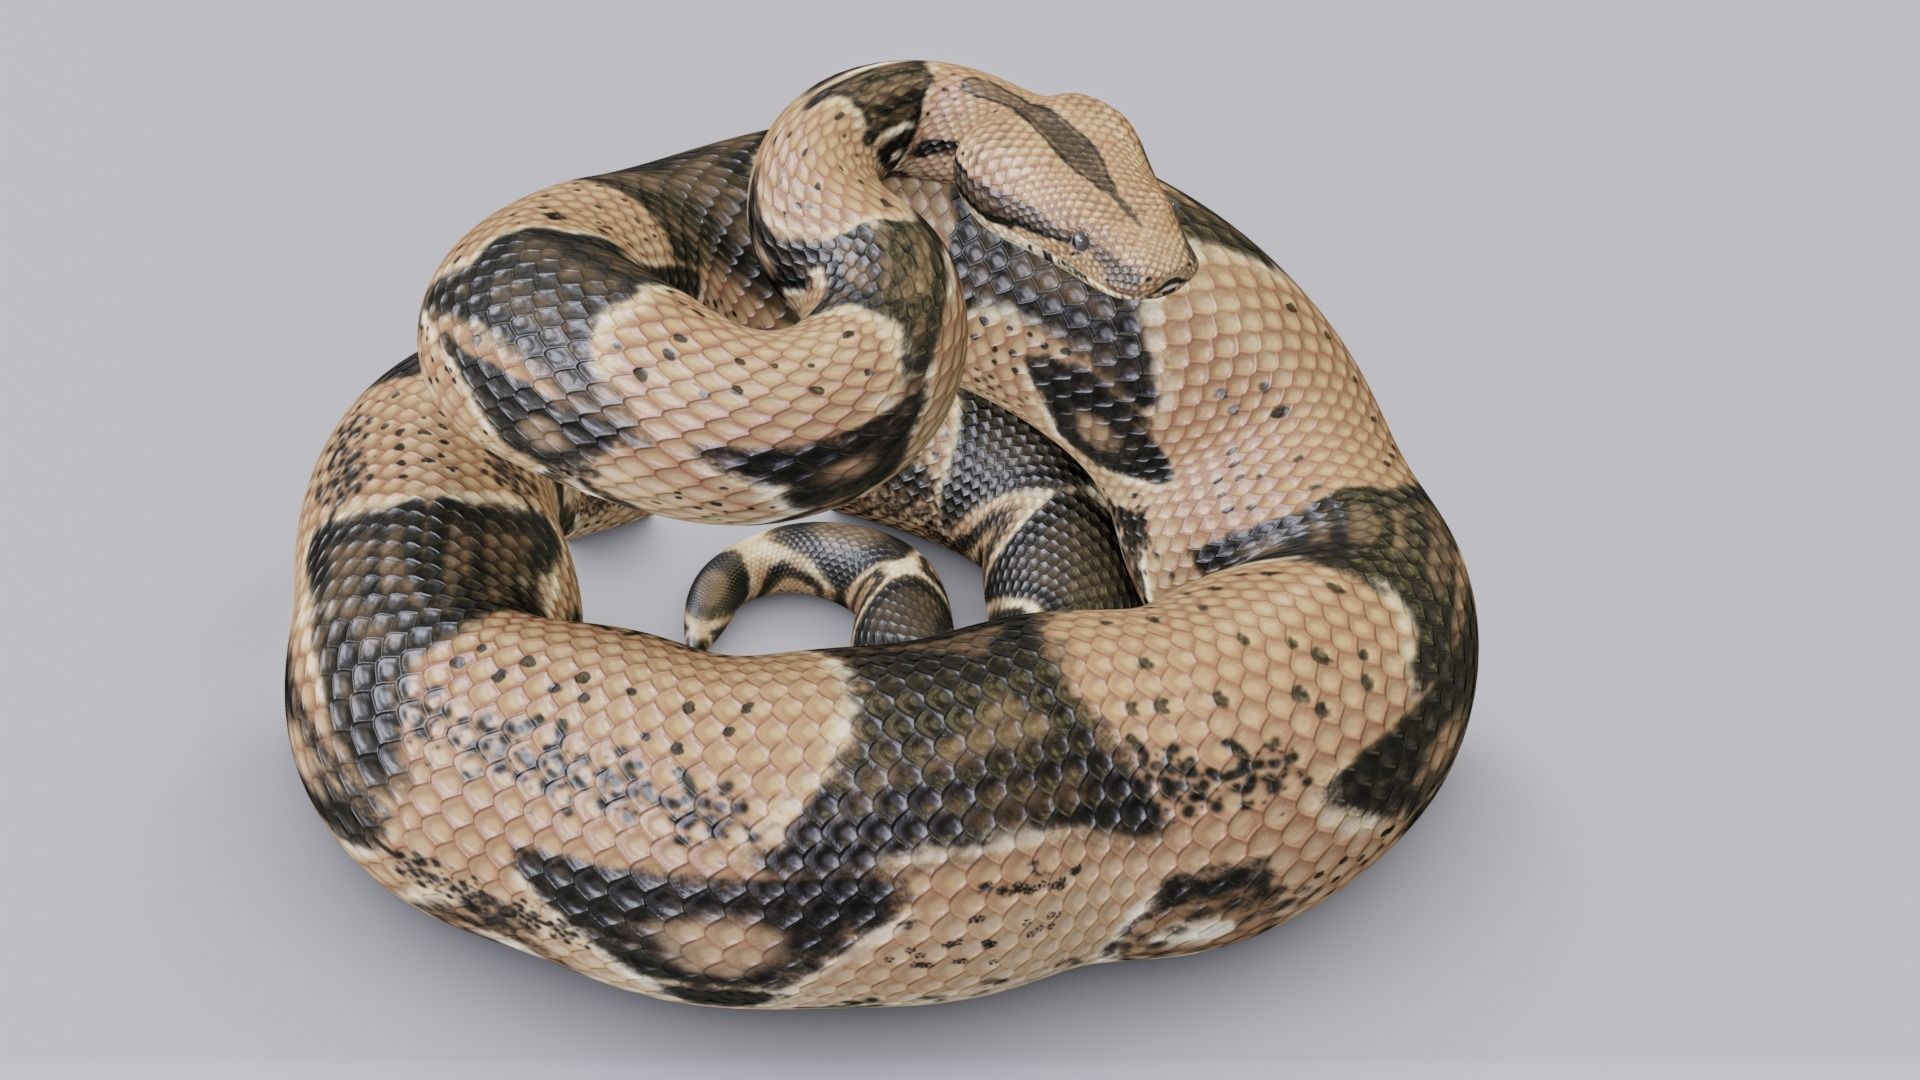 Rigged Boa Constrictor